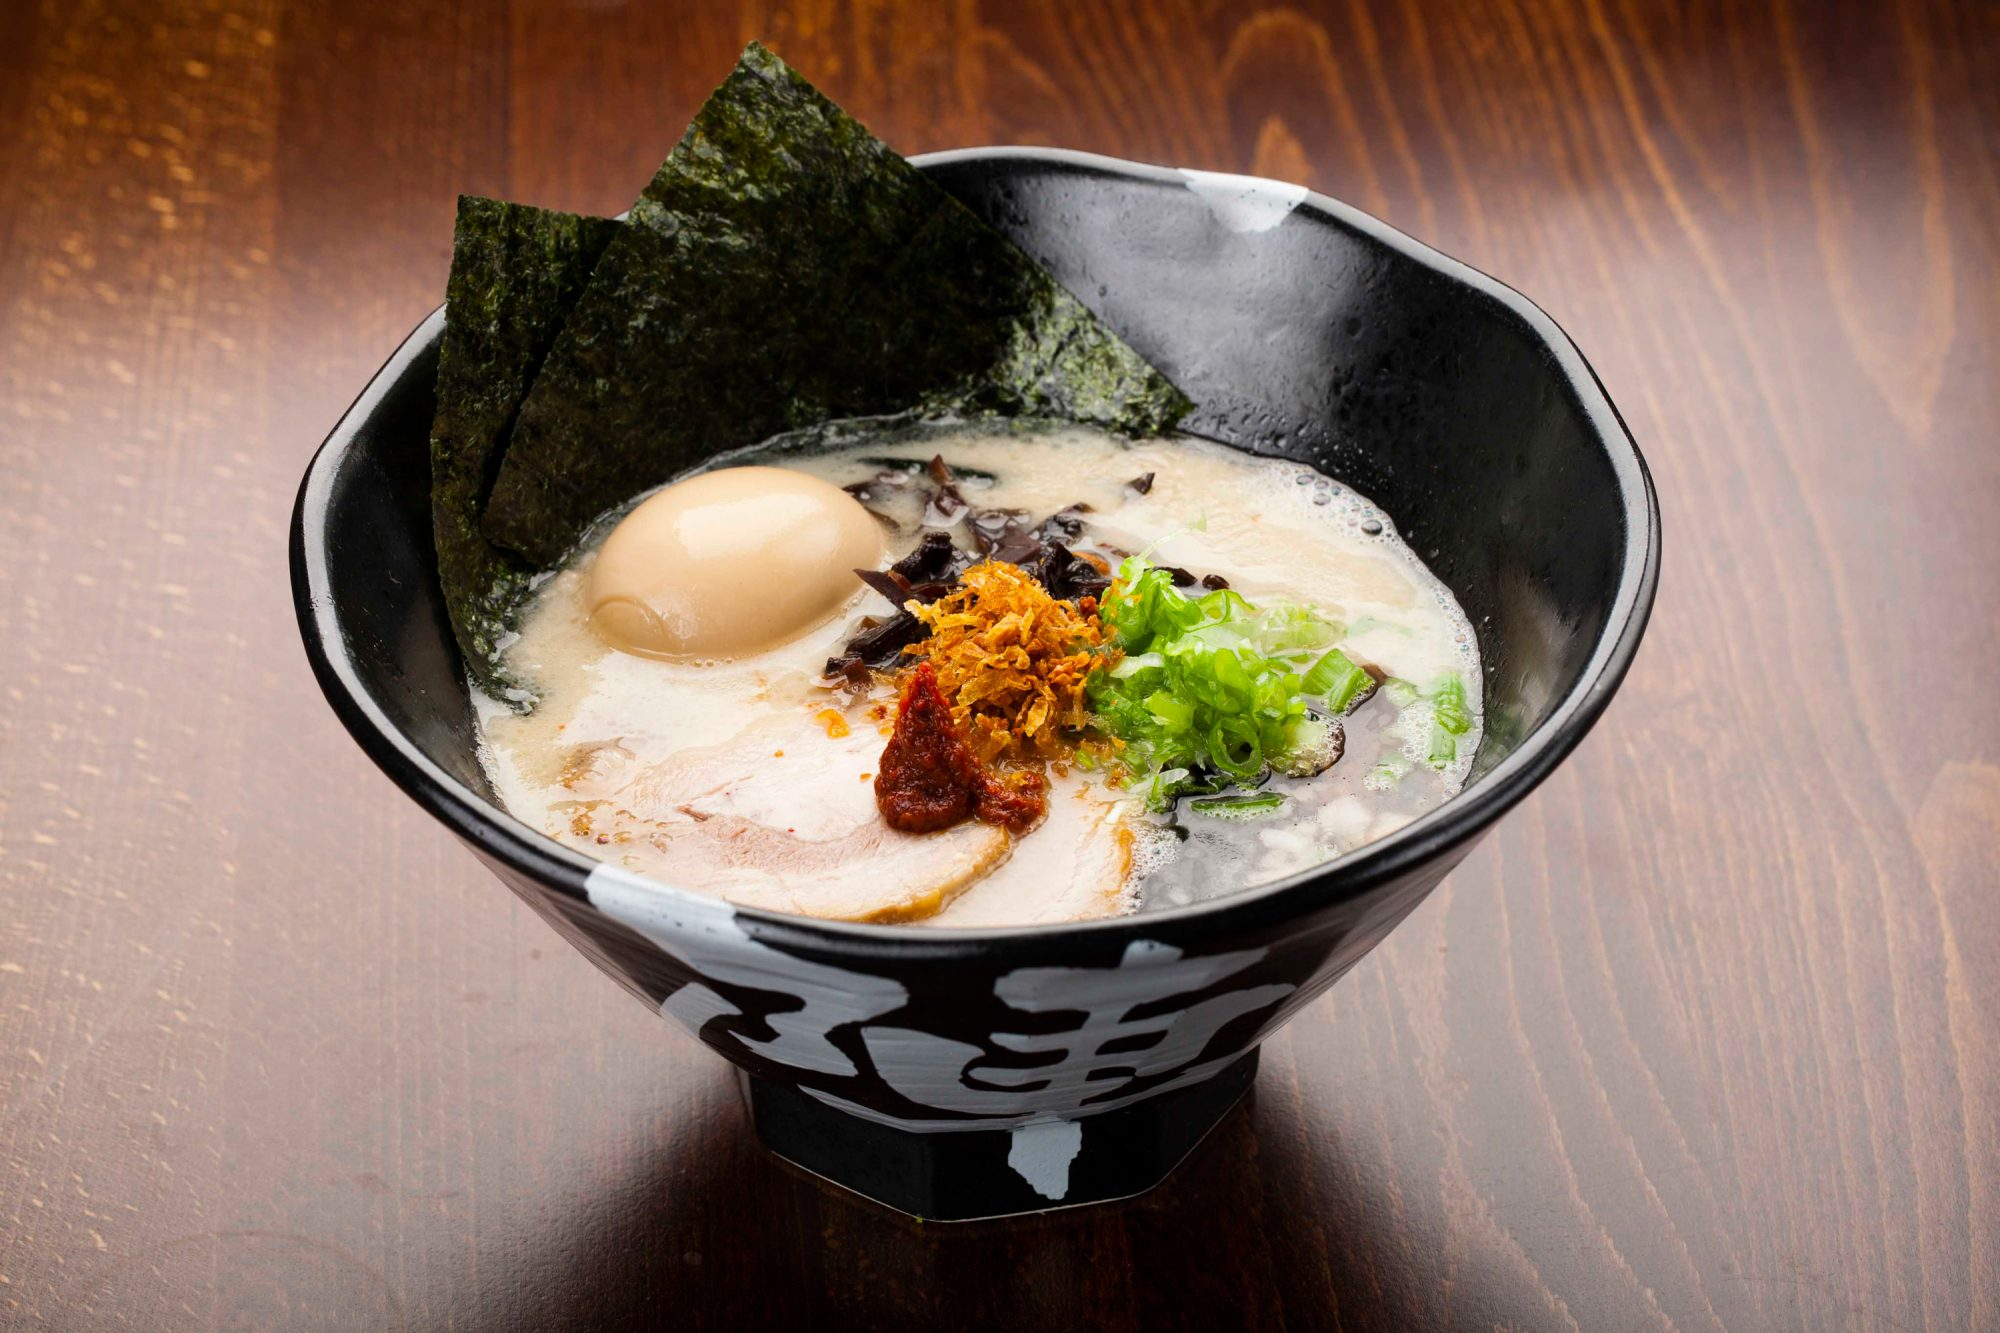 The Little Trick to Eating Ramen That Will Change Your Slurping Game